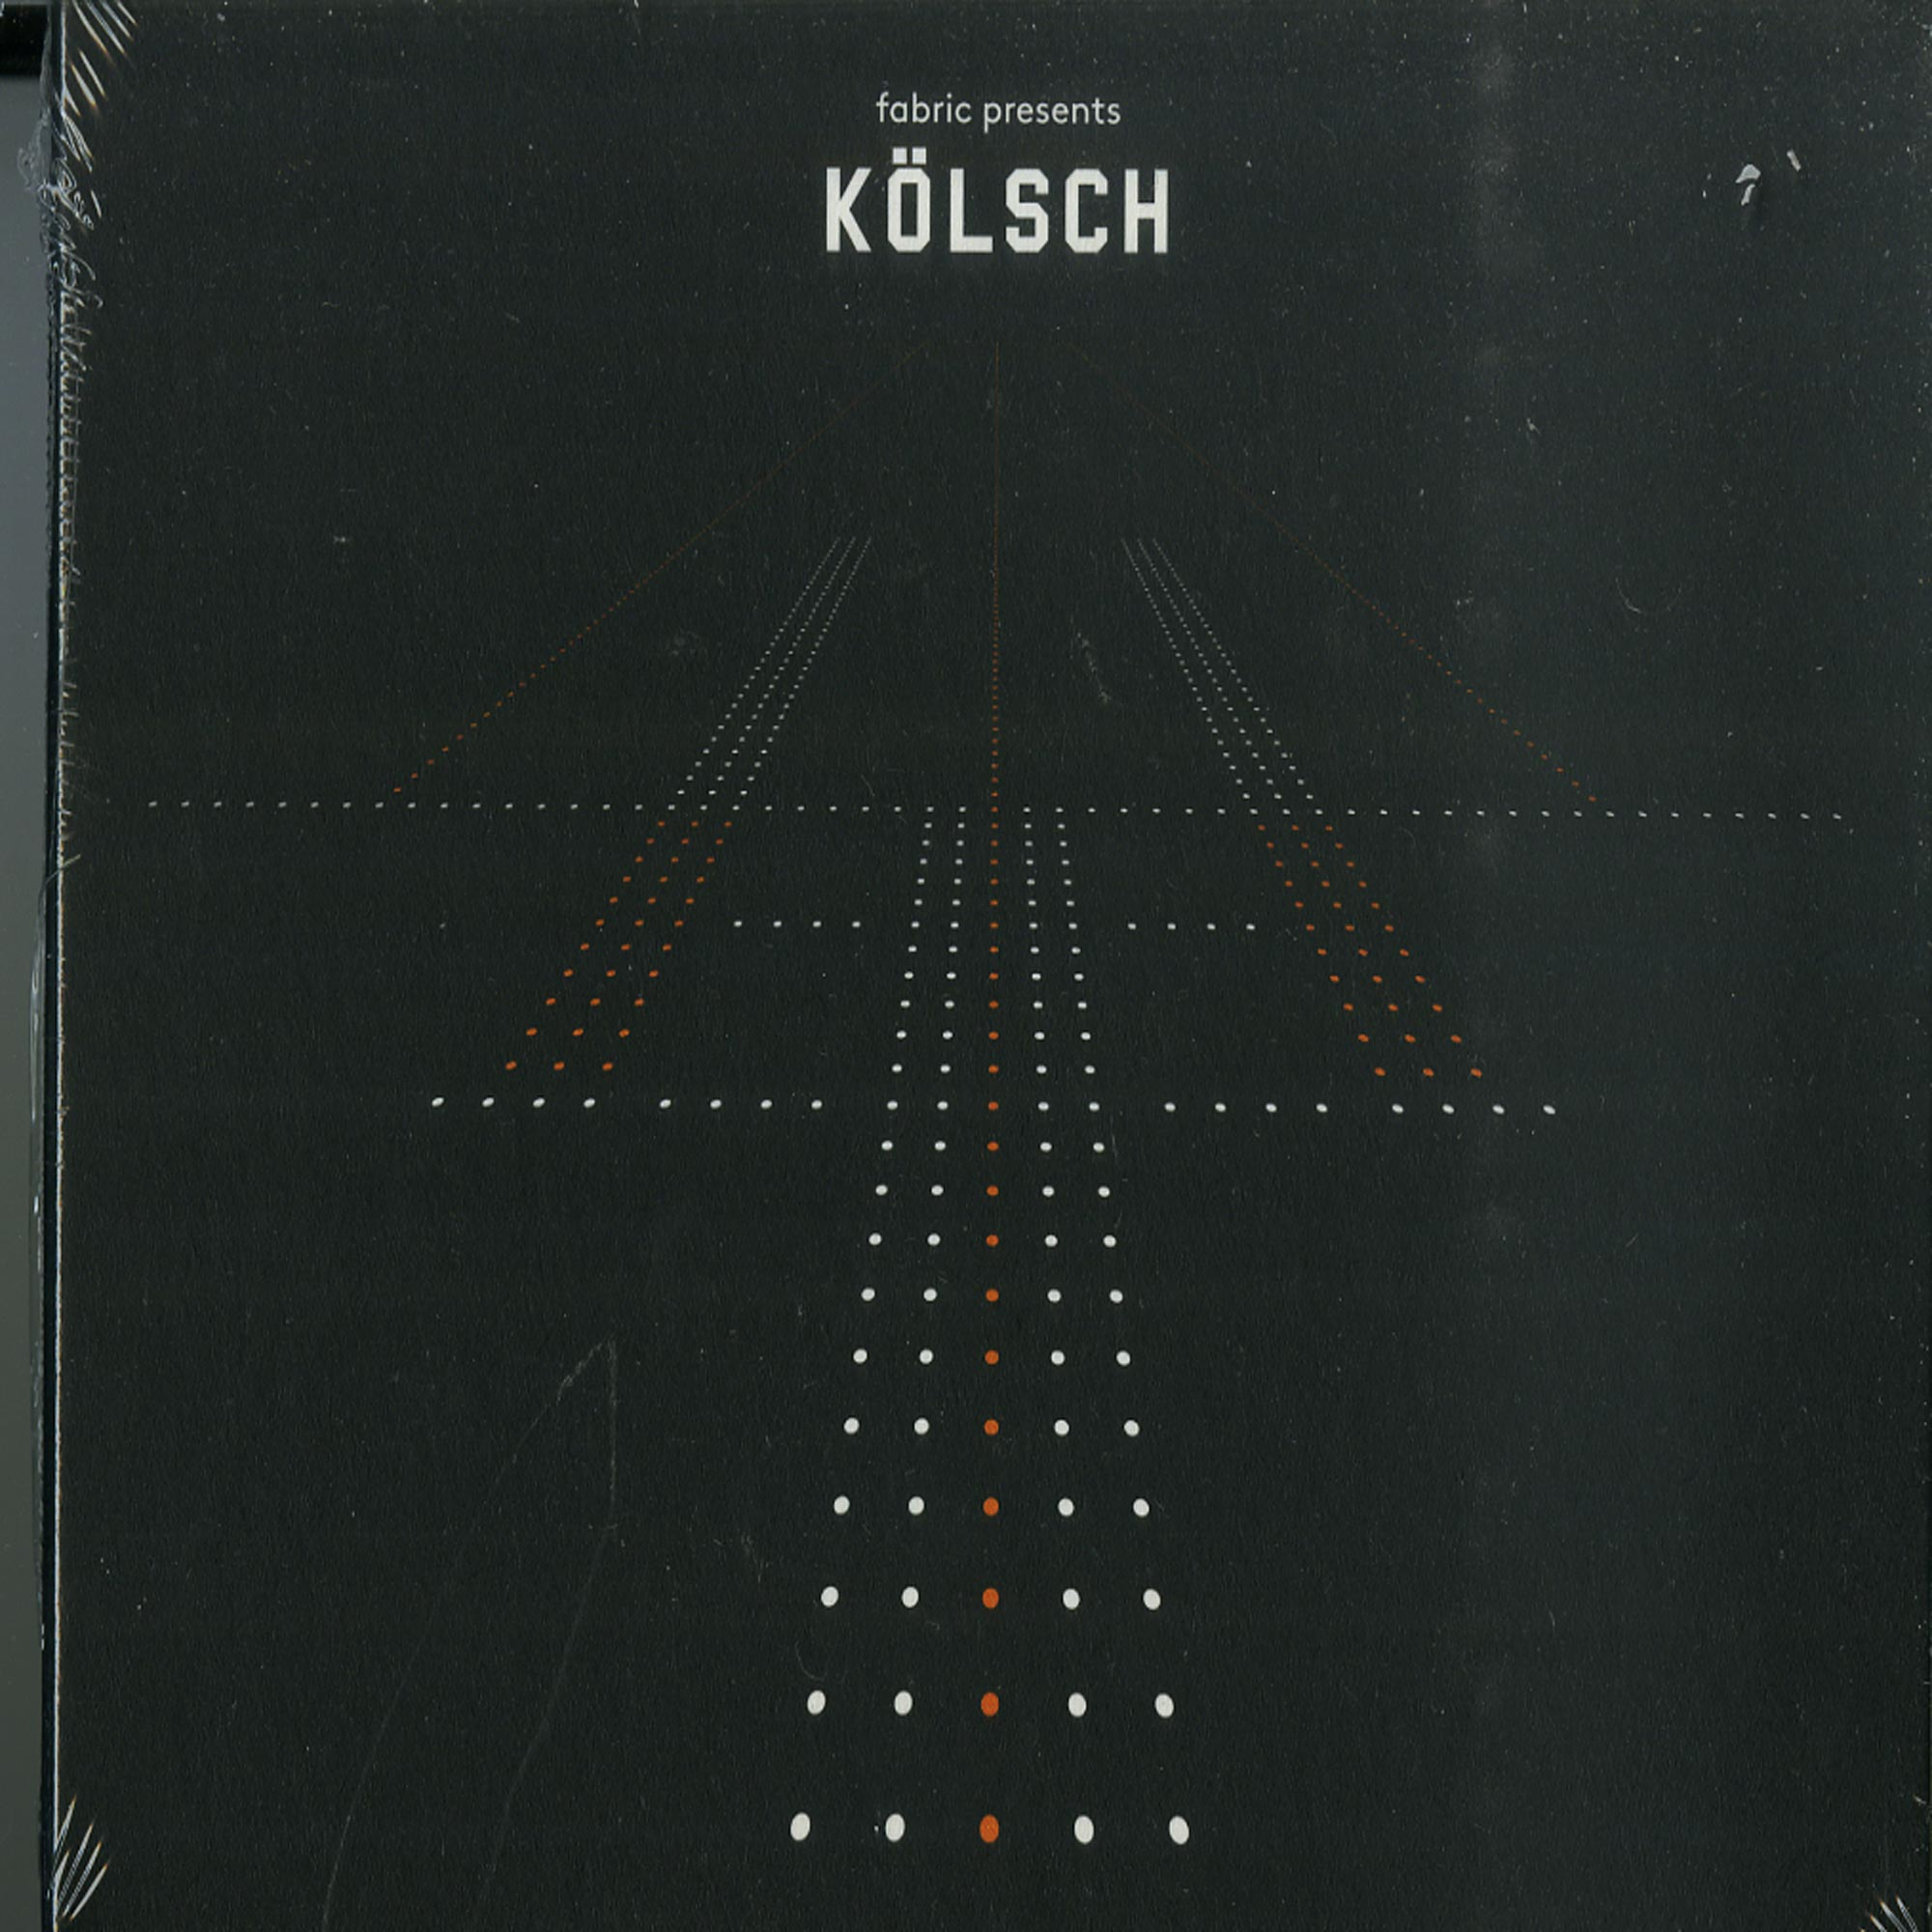 Koelsch - FABRIC PRESENTS: KOELSCH